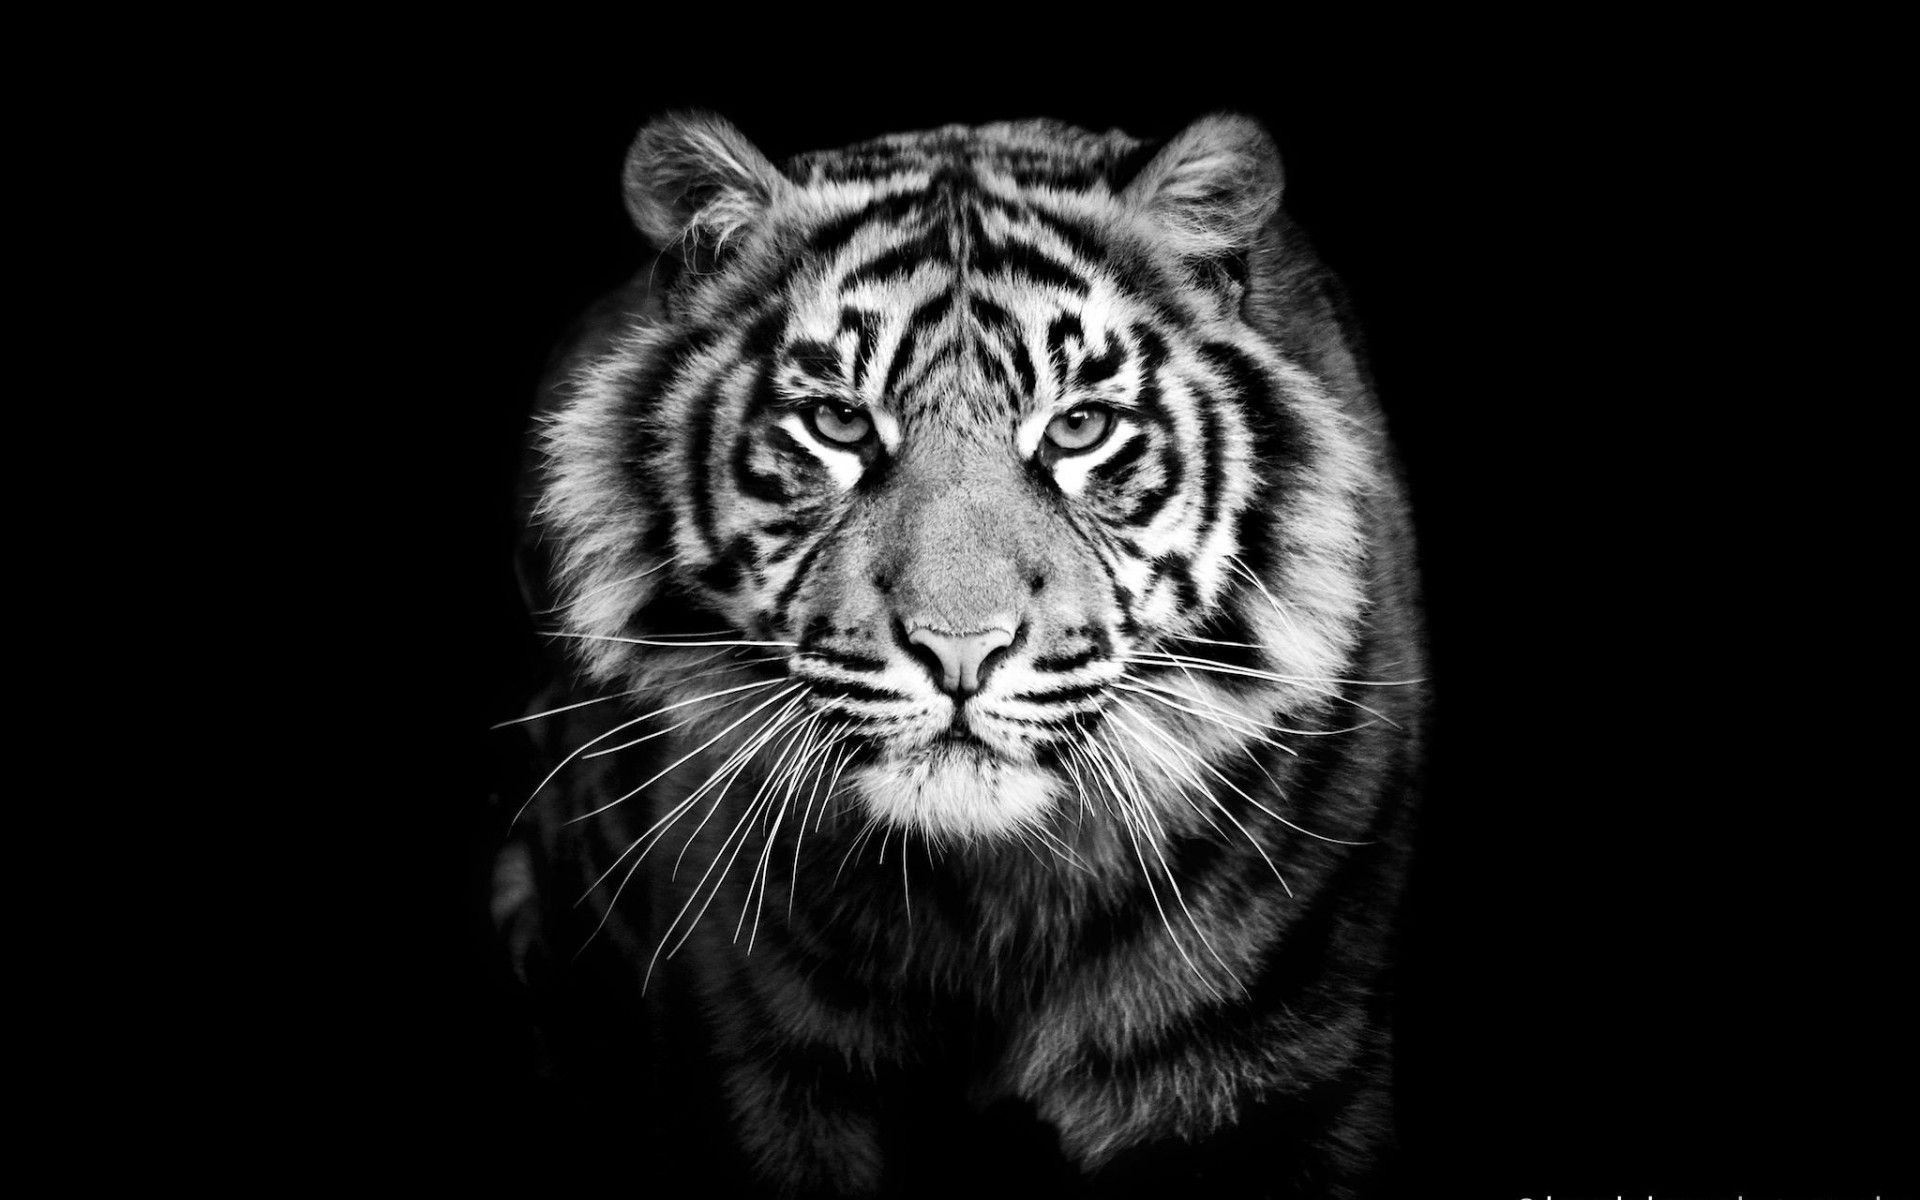 Black Tiger Wallpapers Top Free Black Tiger Backgrounds